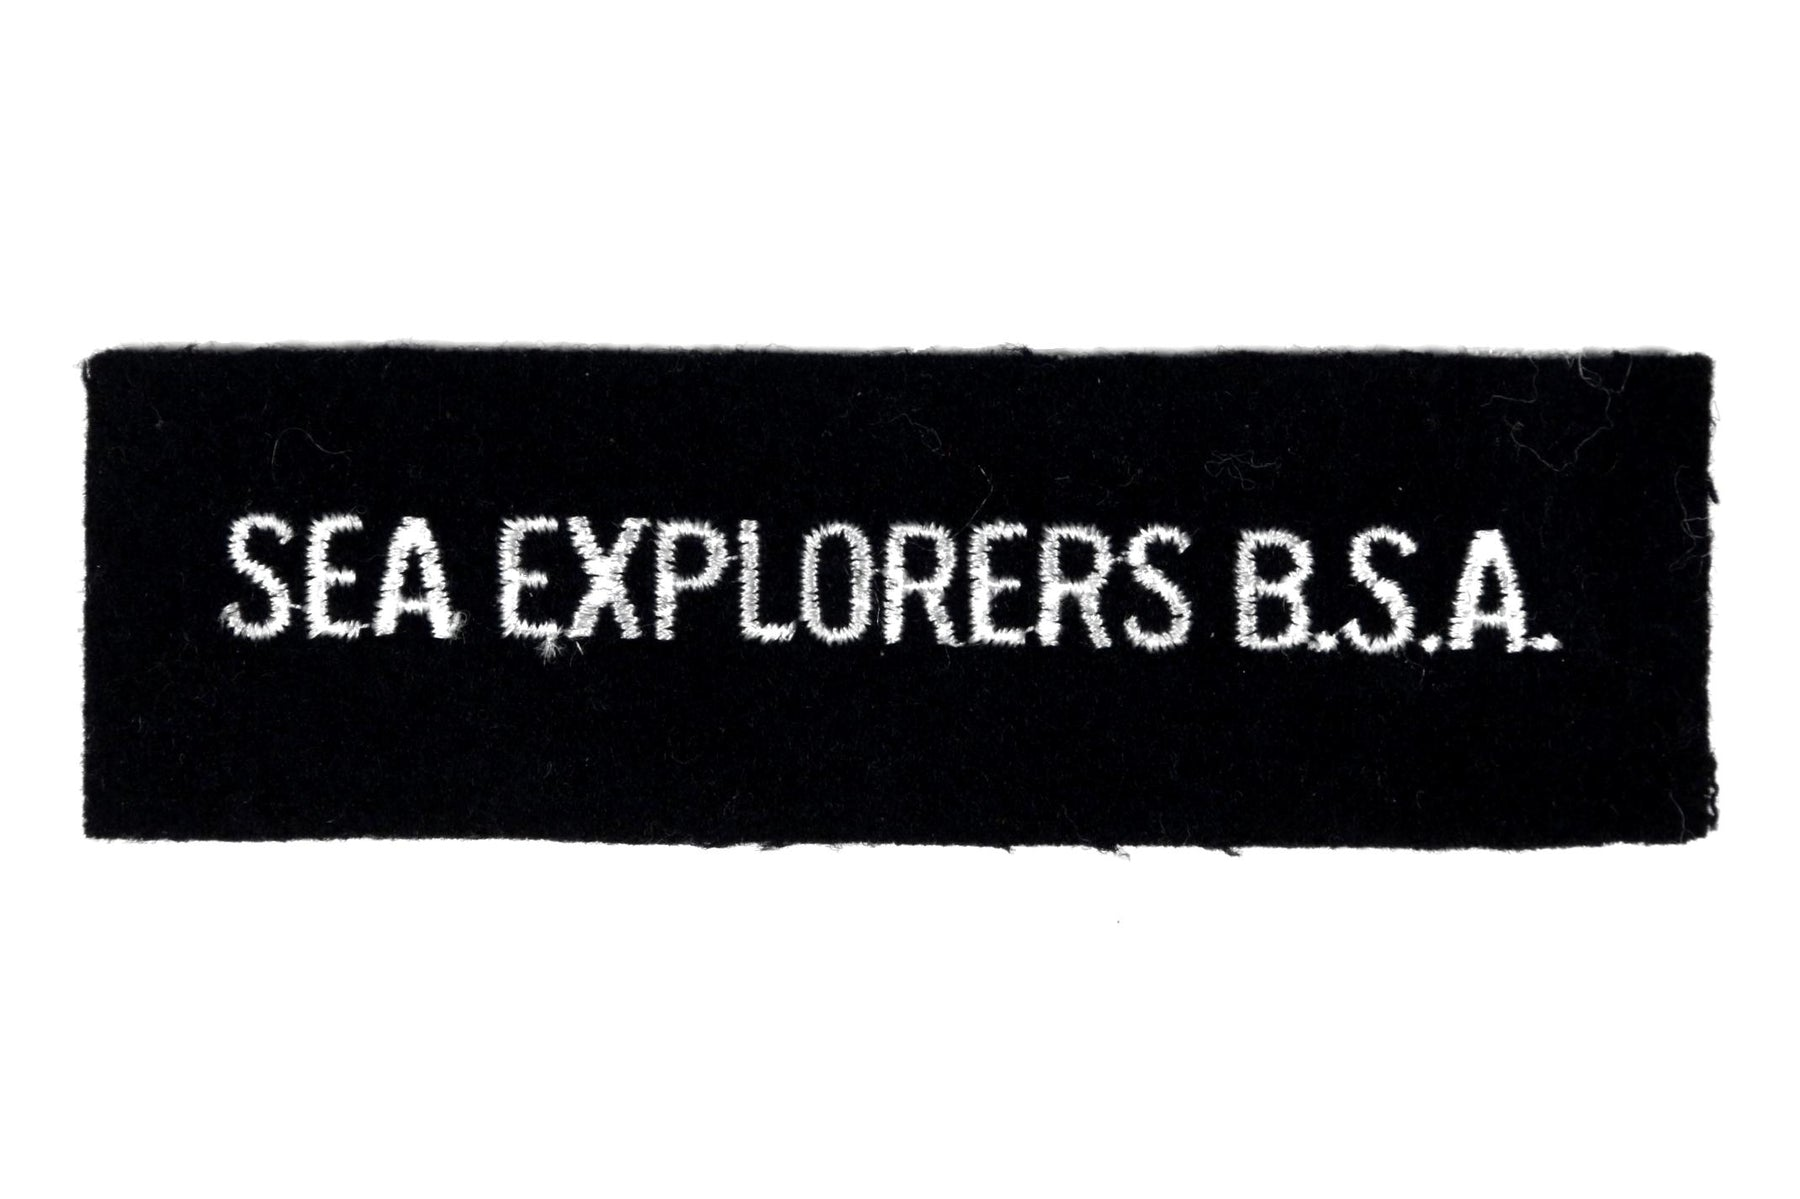 Sea Explorers B.S.A. Shirt Strip on Blue Felt